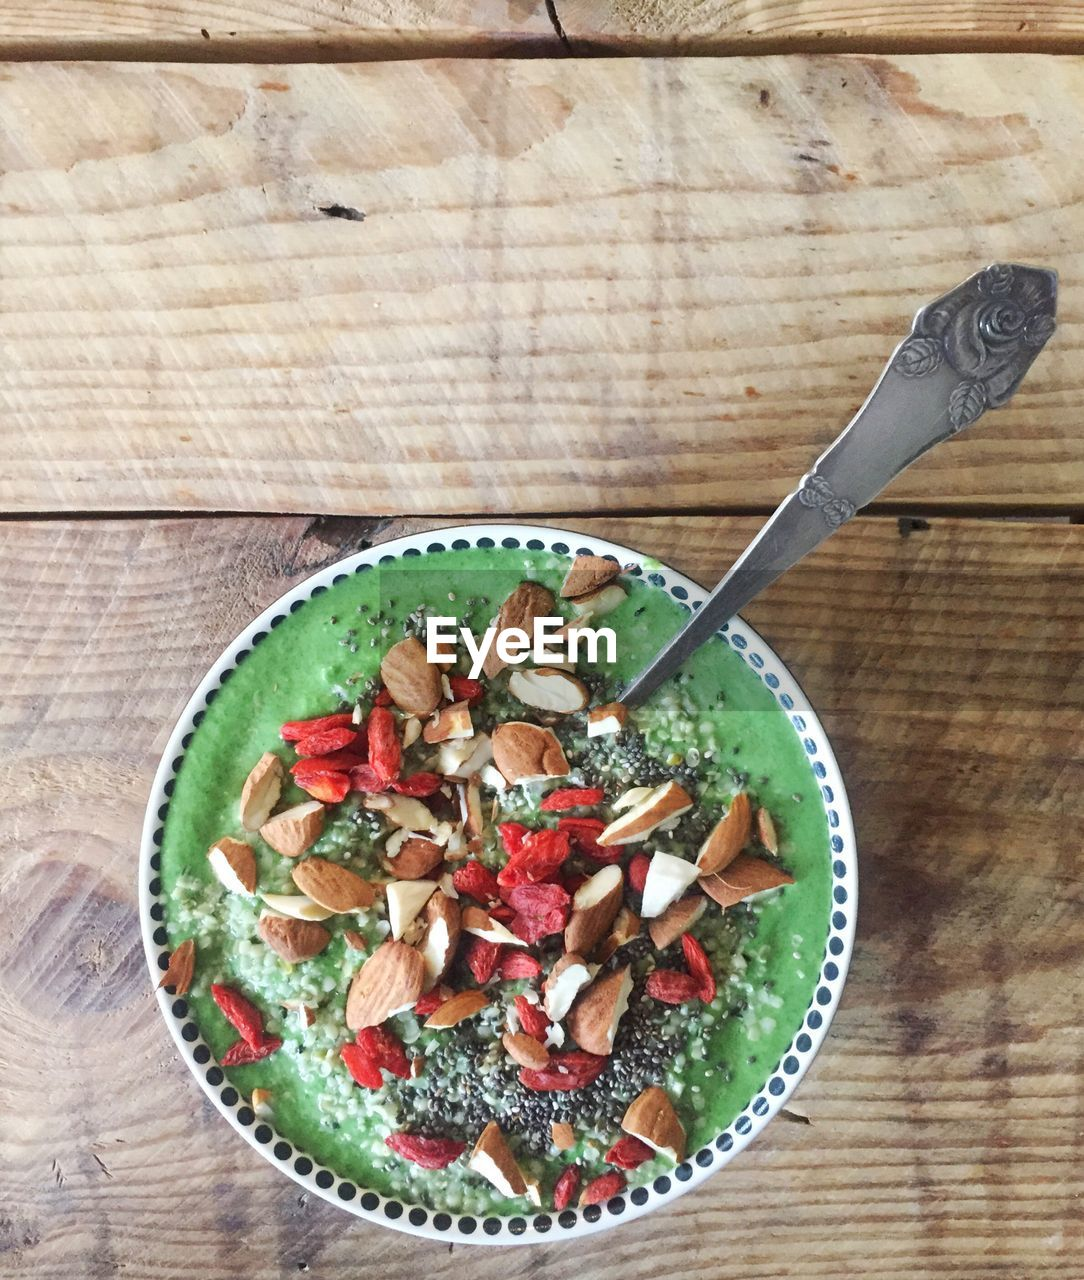 food and drink, food, healthy eating, eating utensil, kitchen utensil, wellbeing, table, freshness, spoon, bowl, directly above, fruit, wood - material, meal, indoors, high angle view, no people, breakfast, close-up, ready-to-eat, wood grain